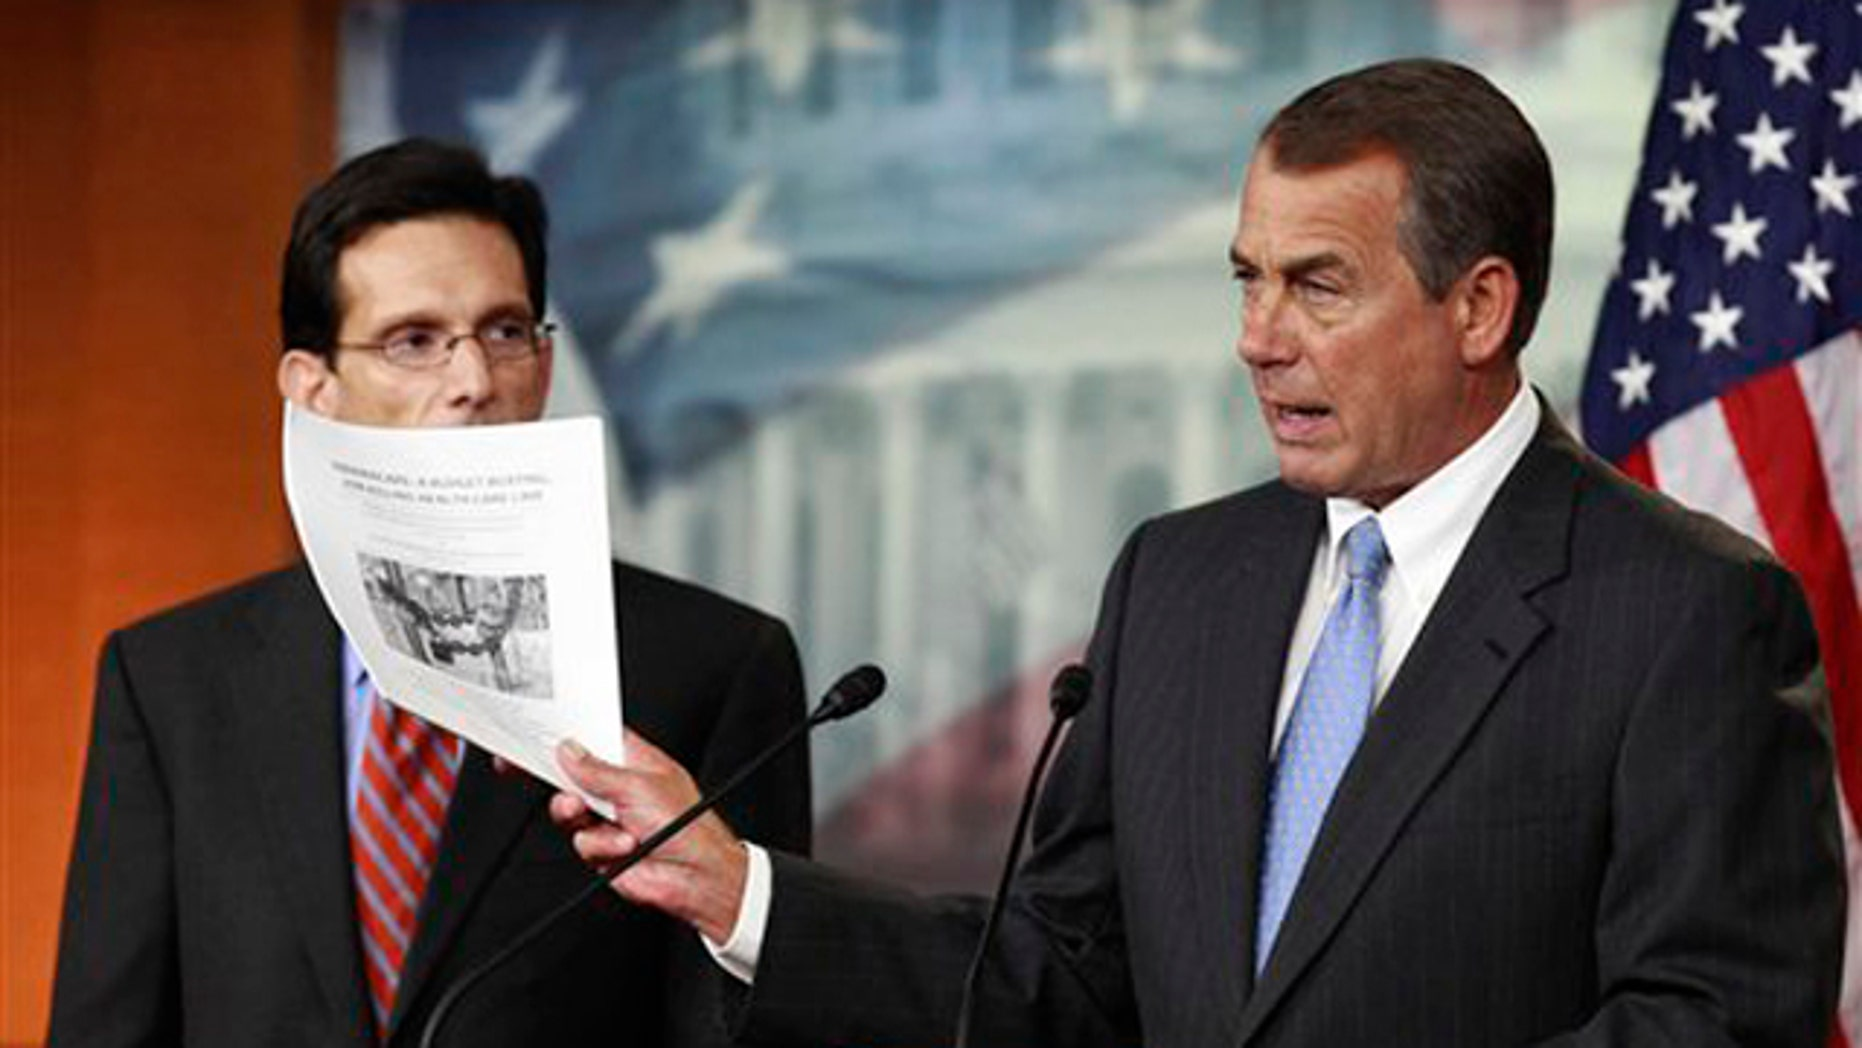 In this Jan. 6 file photo, House Speaker John Boehner, right, accompanied by House Majority Leader Eric Cantor, holds a copy of a proposal to repeal the health care law.